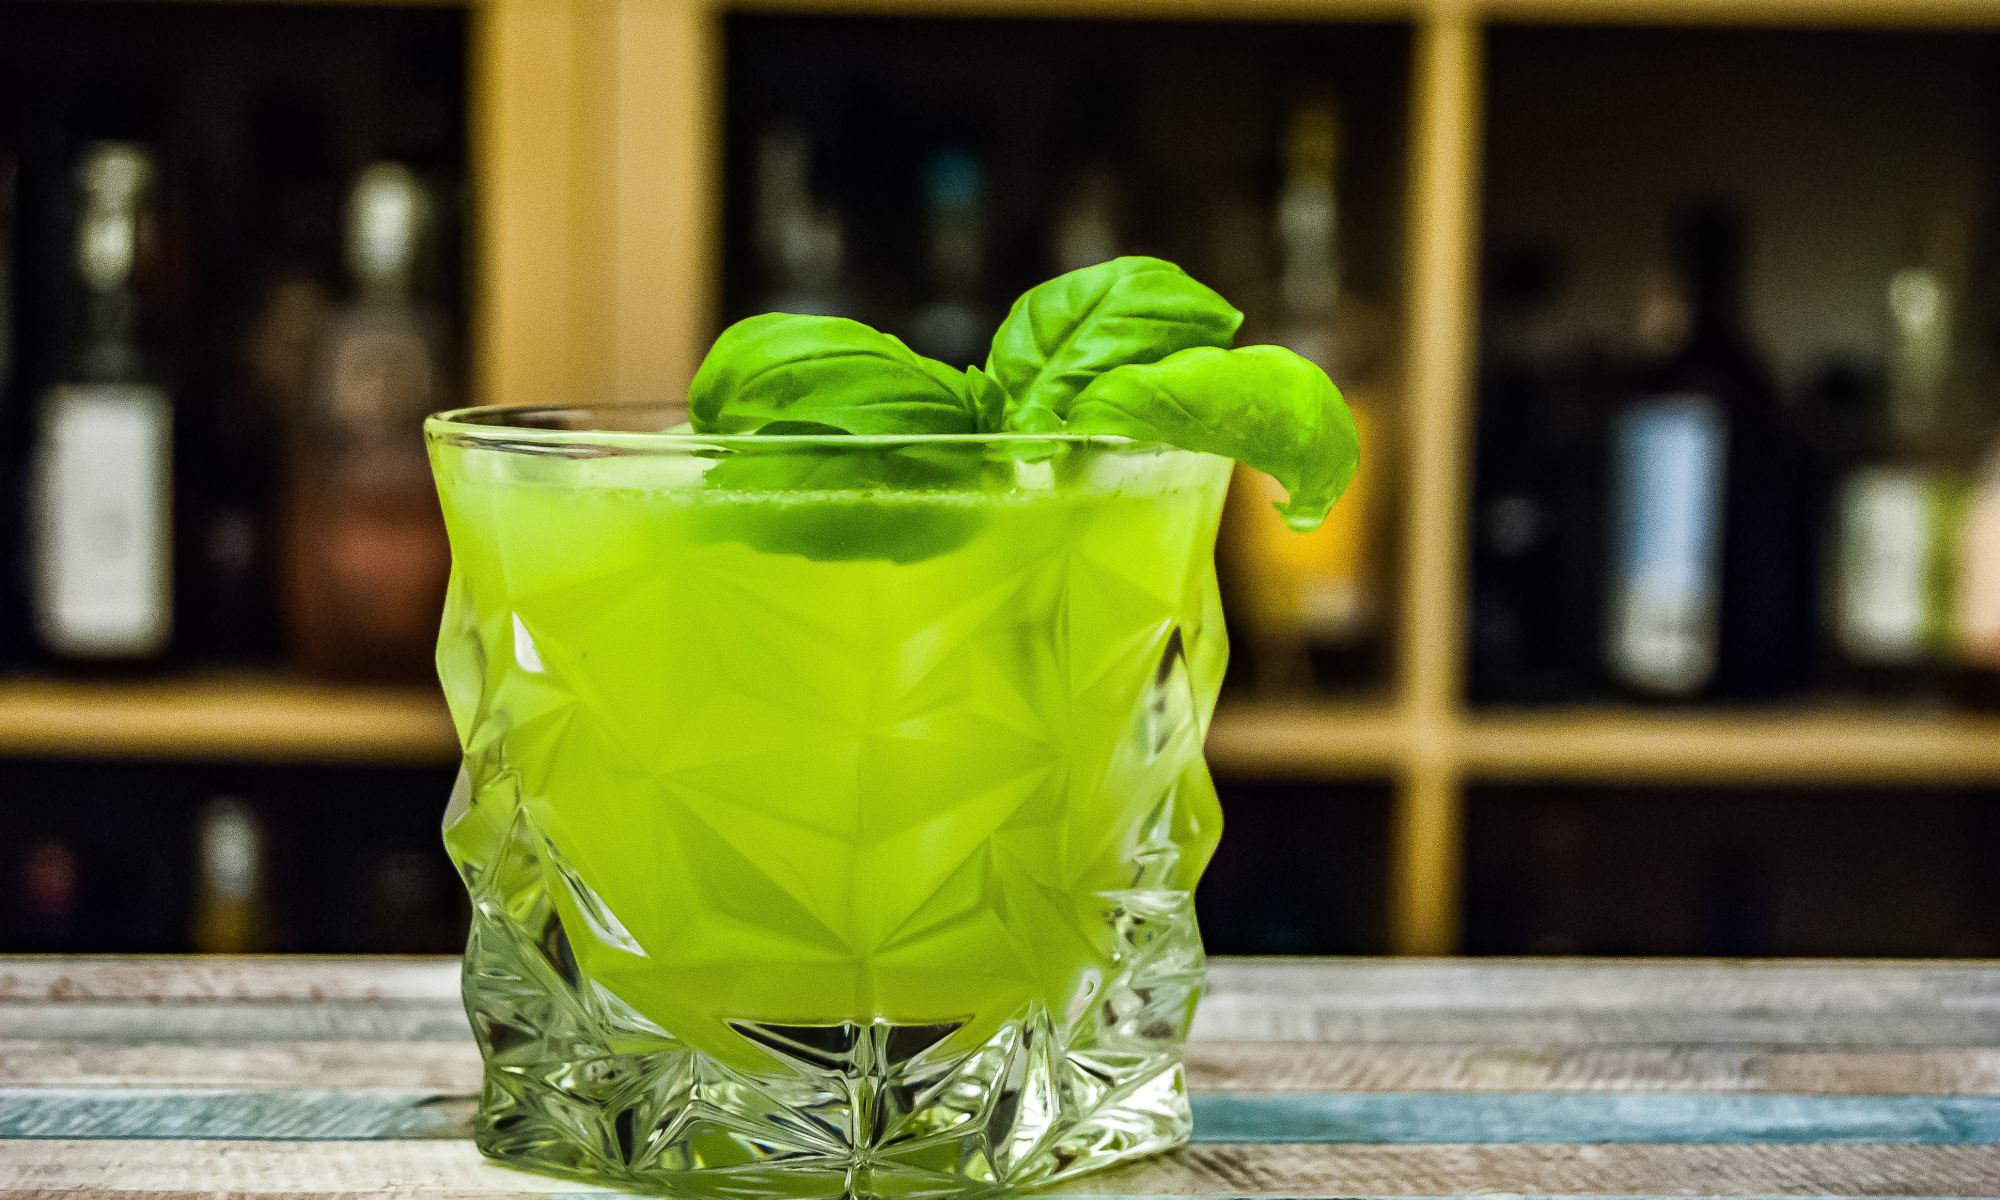 Rock glass filled with green alcohol in front of bar